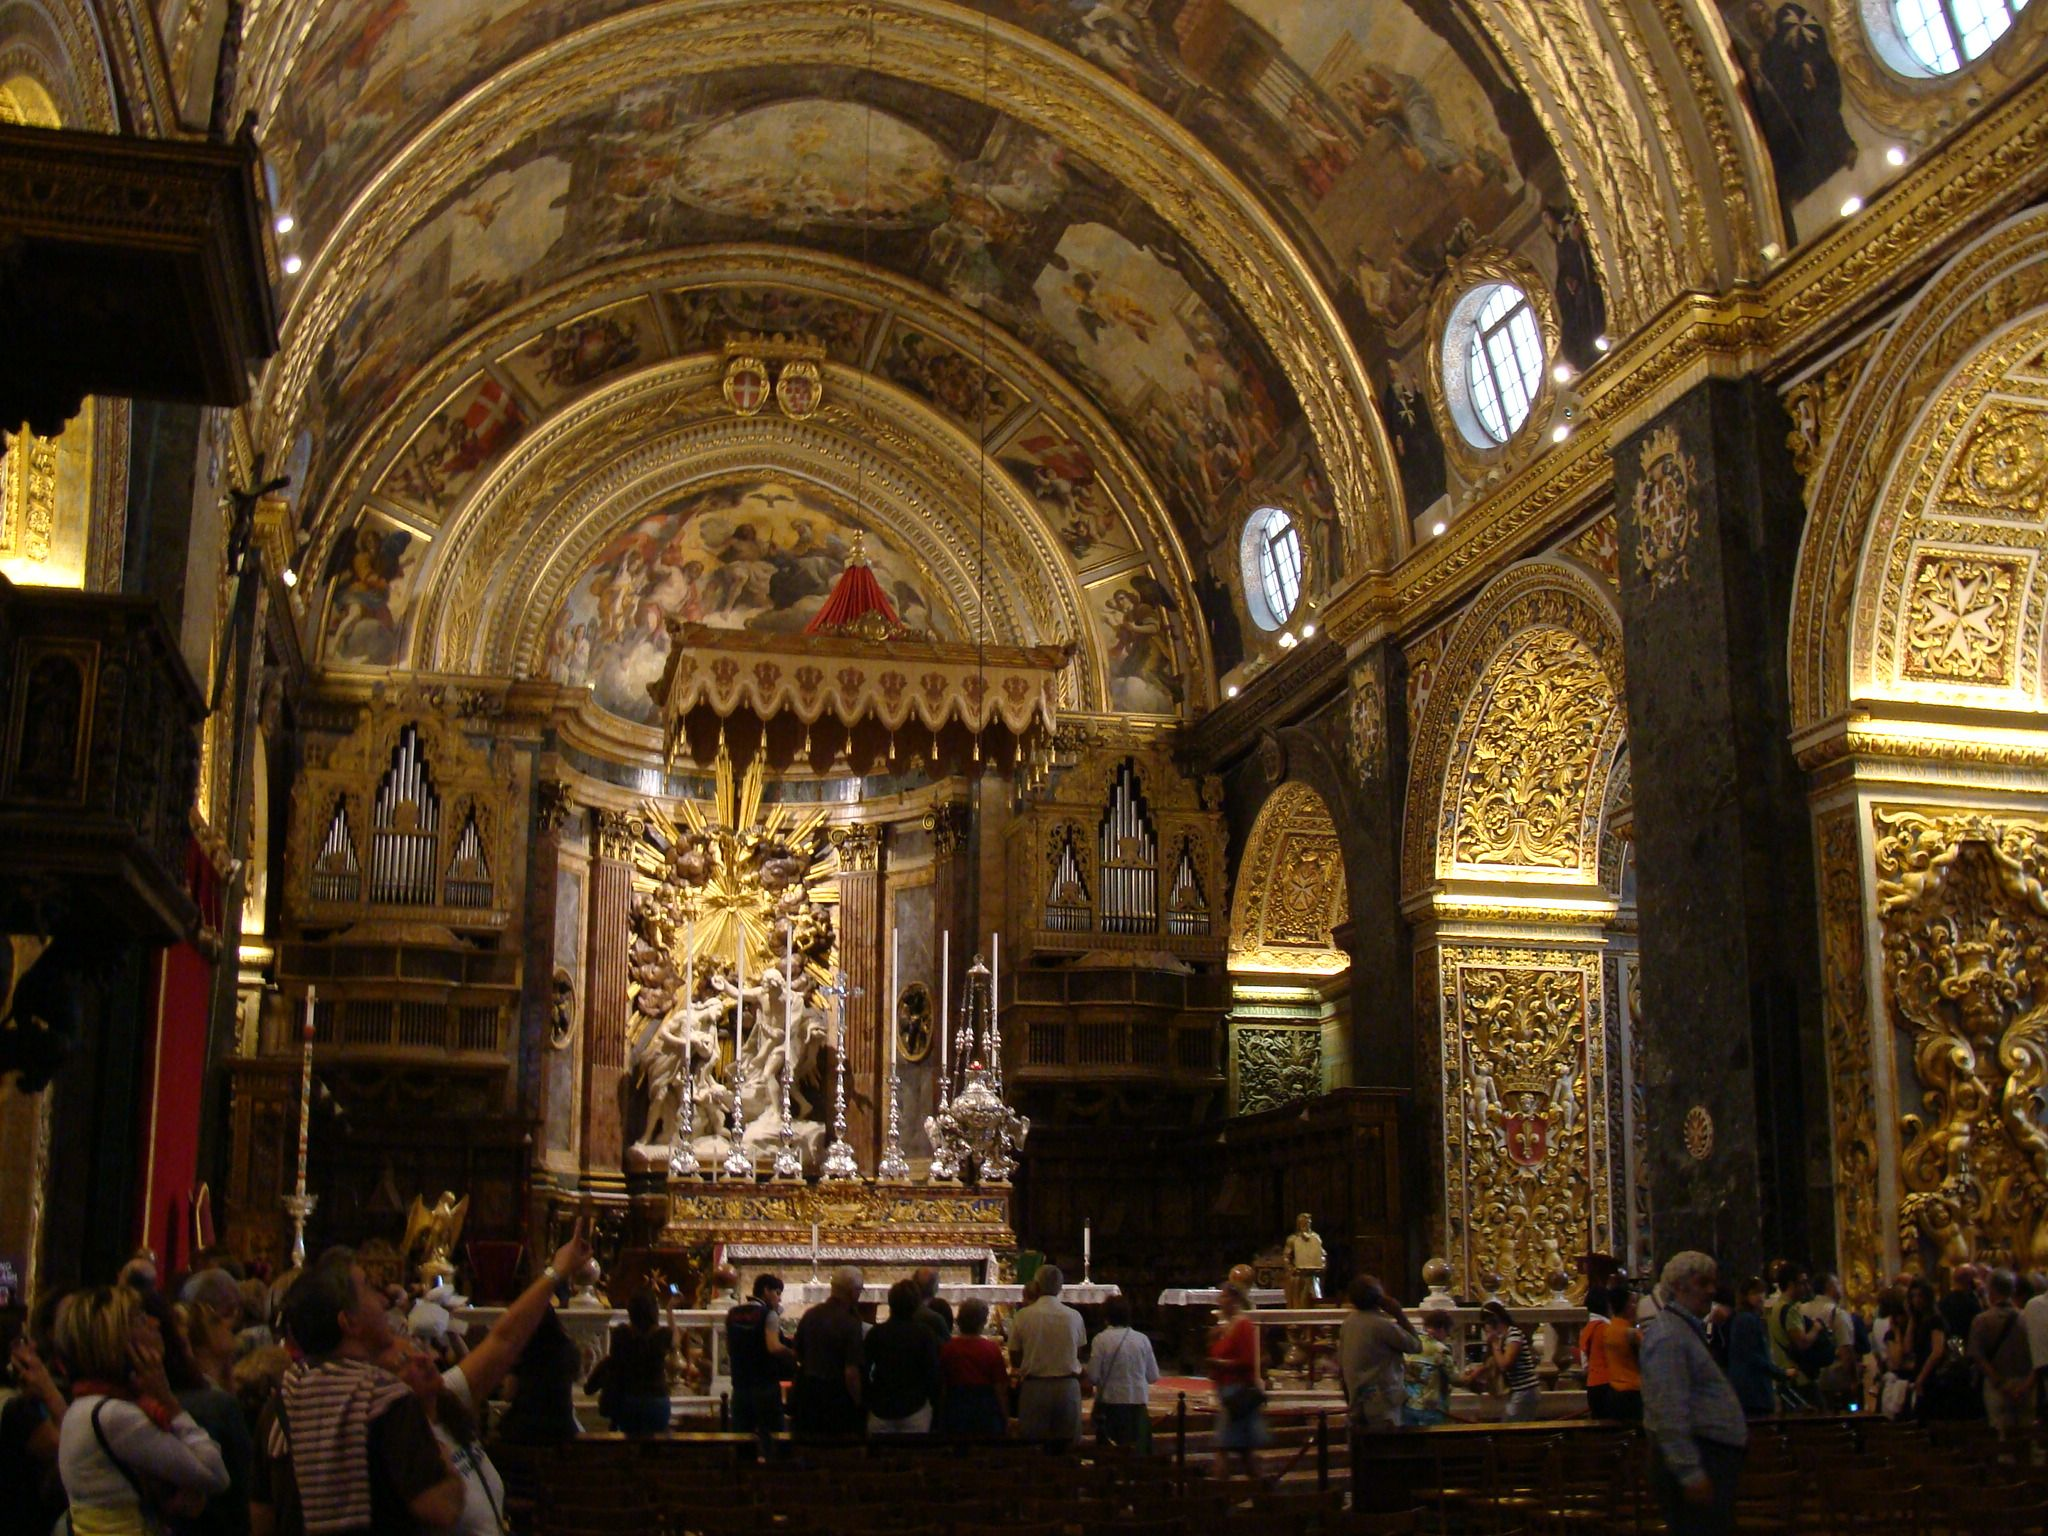 [PH] St. John's Co-Cathedral, Valletta, Malta, 20080502